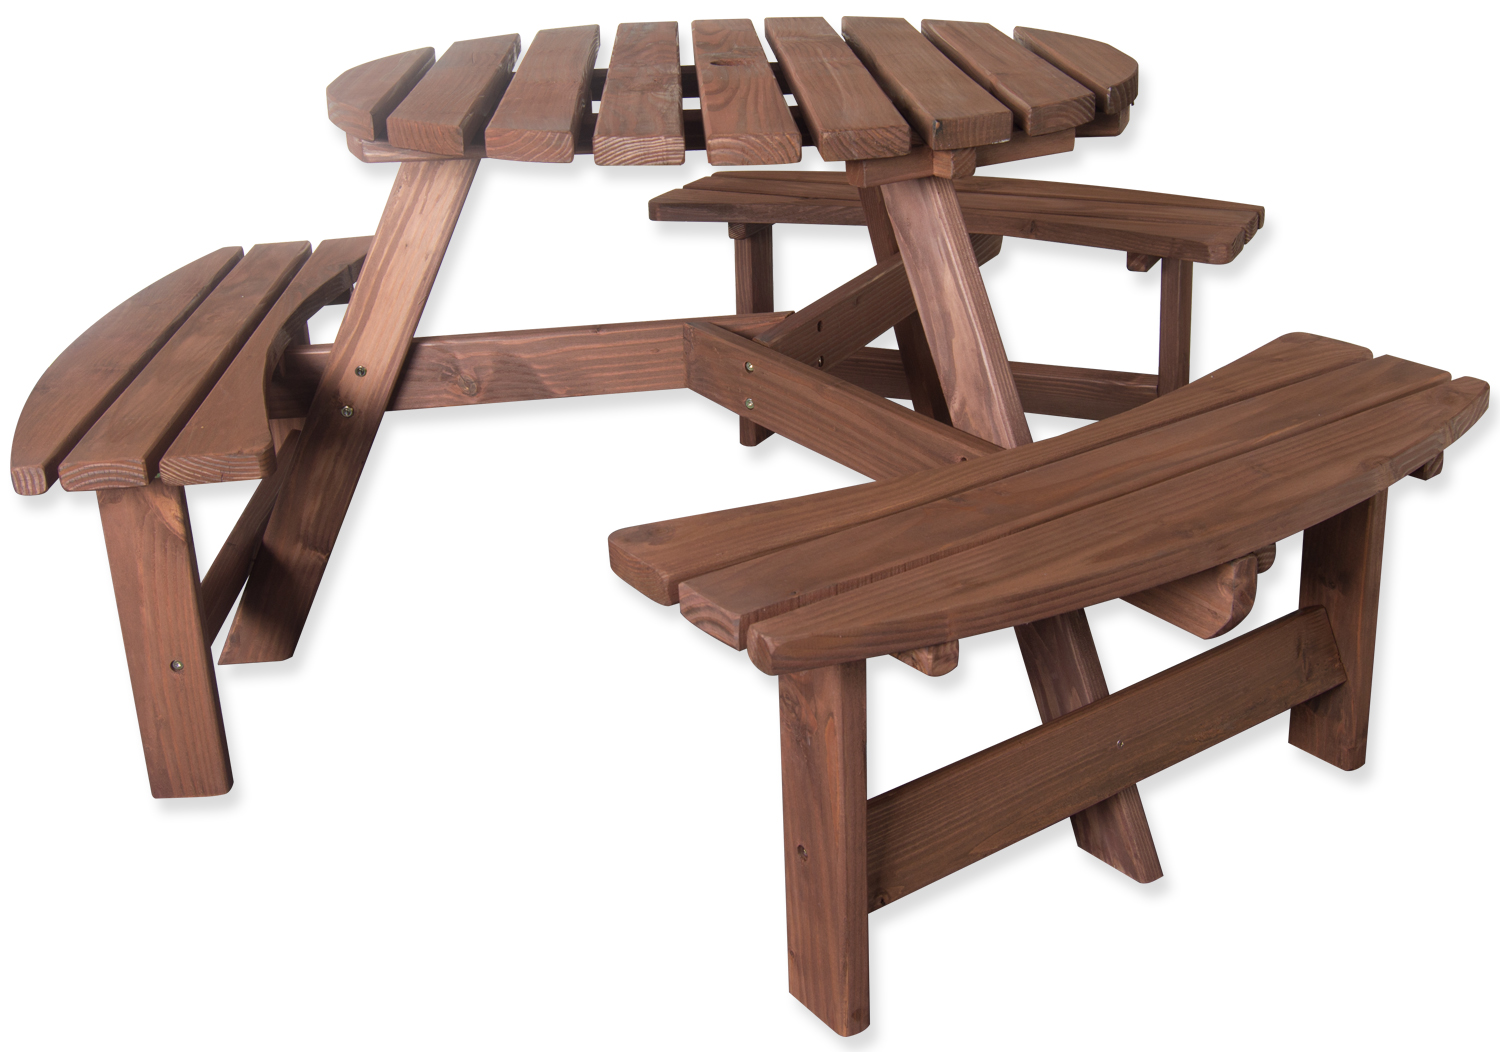 woodside 6 seater round pressure treated bench